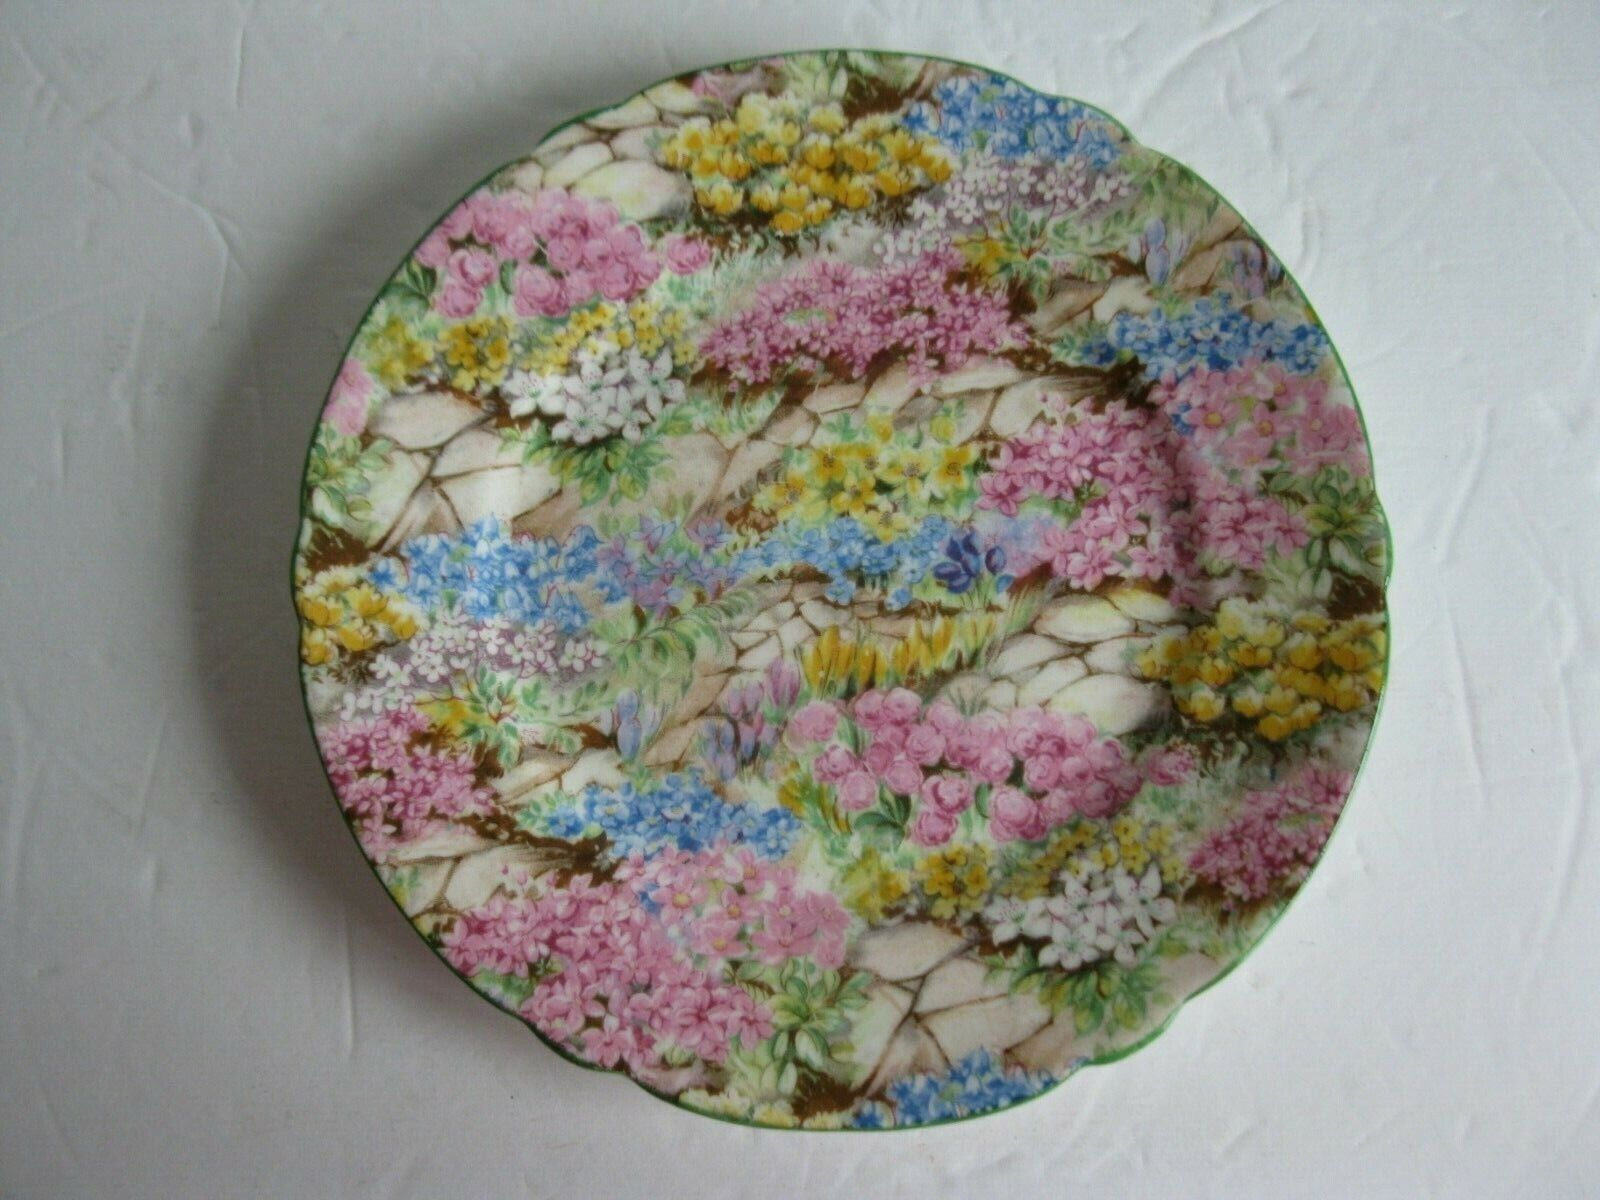 ANTIQUE SHELLEY CHINTZ ROCK GARDEN BREAD AND BUTTER PLATE 6 IN. - $29.00